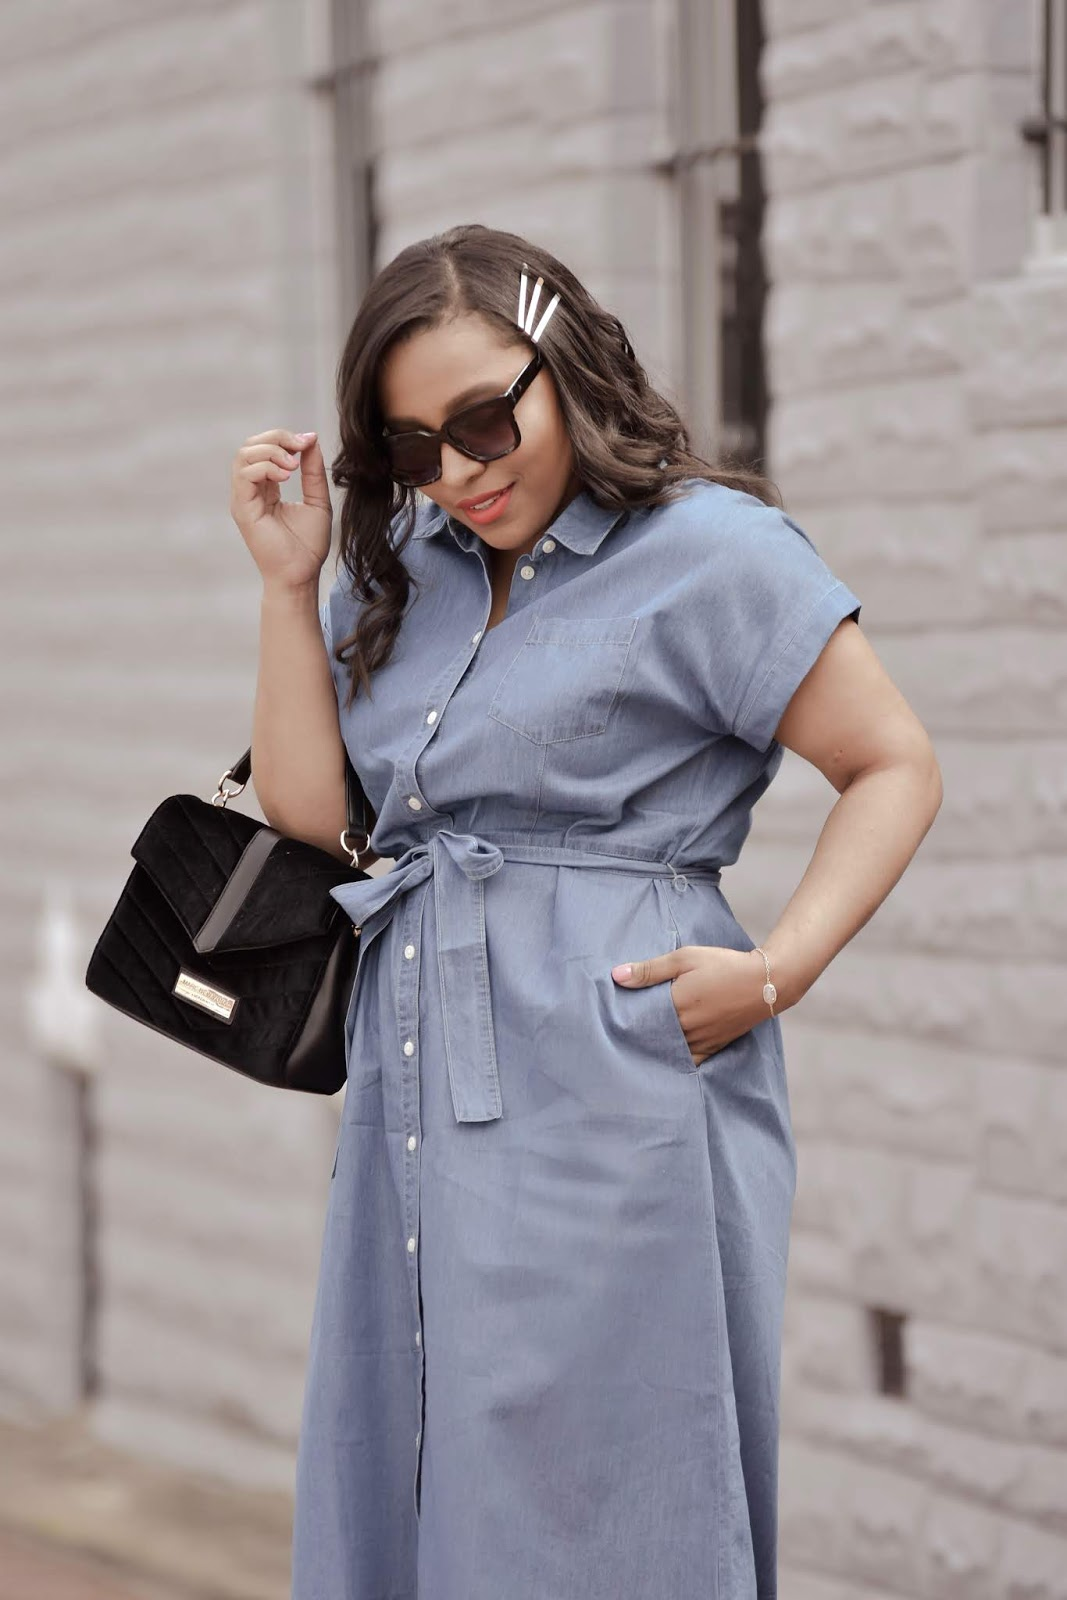 Walmart fashion, We dress America, streetstyle, mom bloggers, spring fashion, denim dress, walmart clothes.